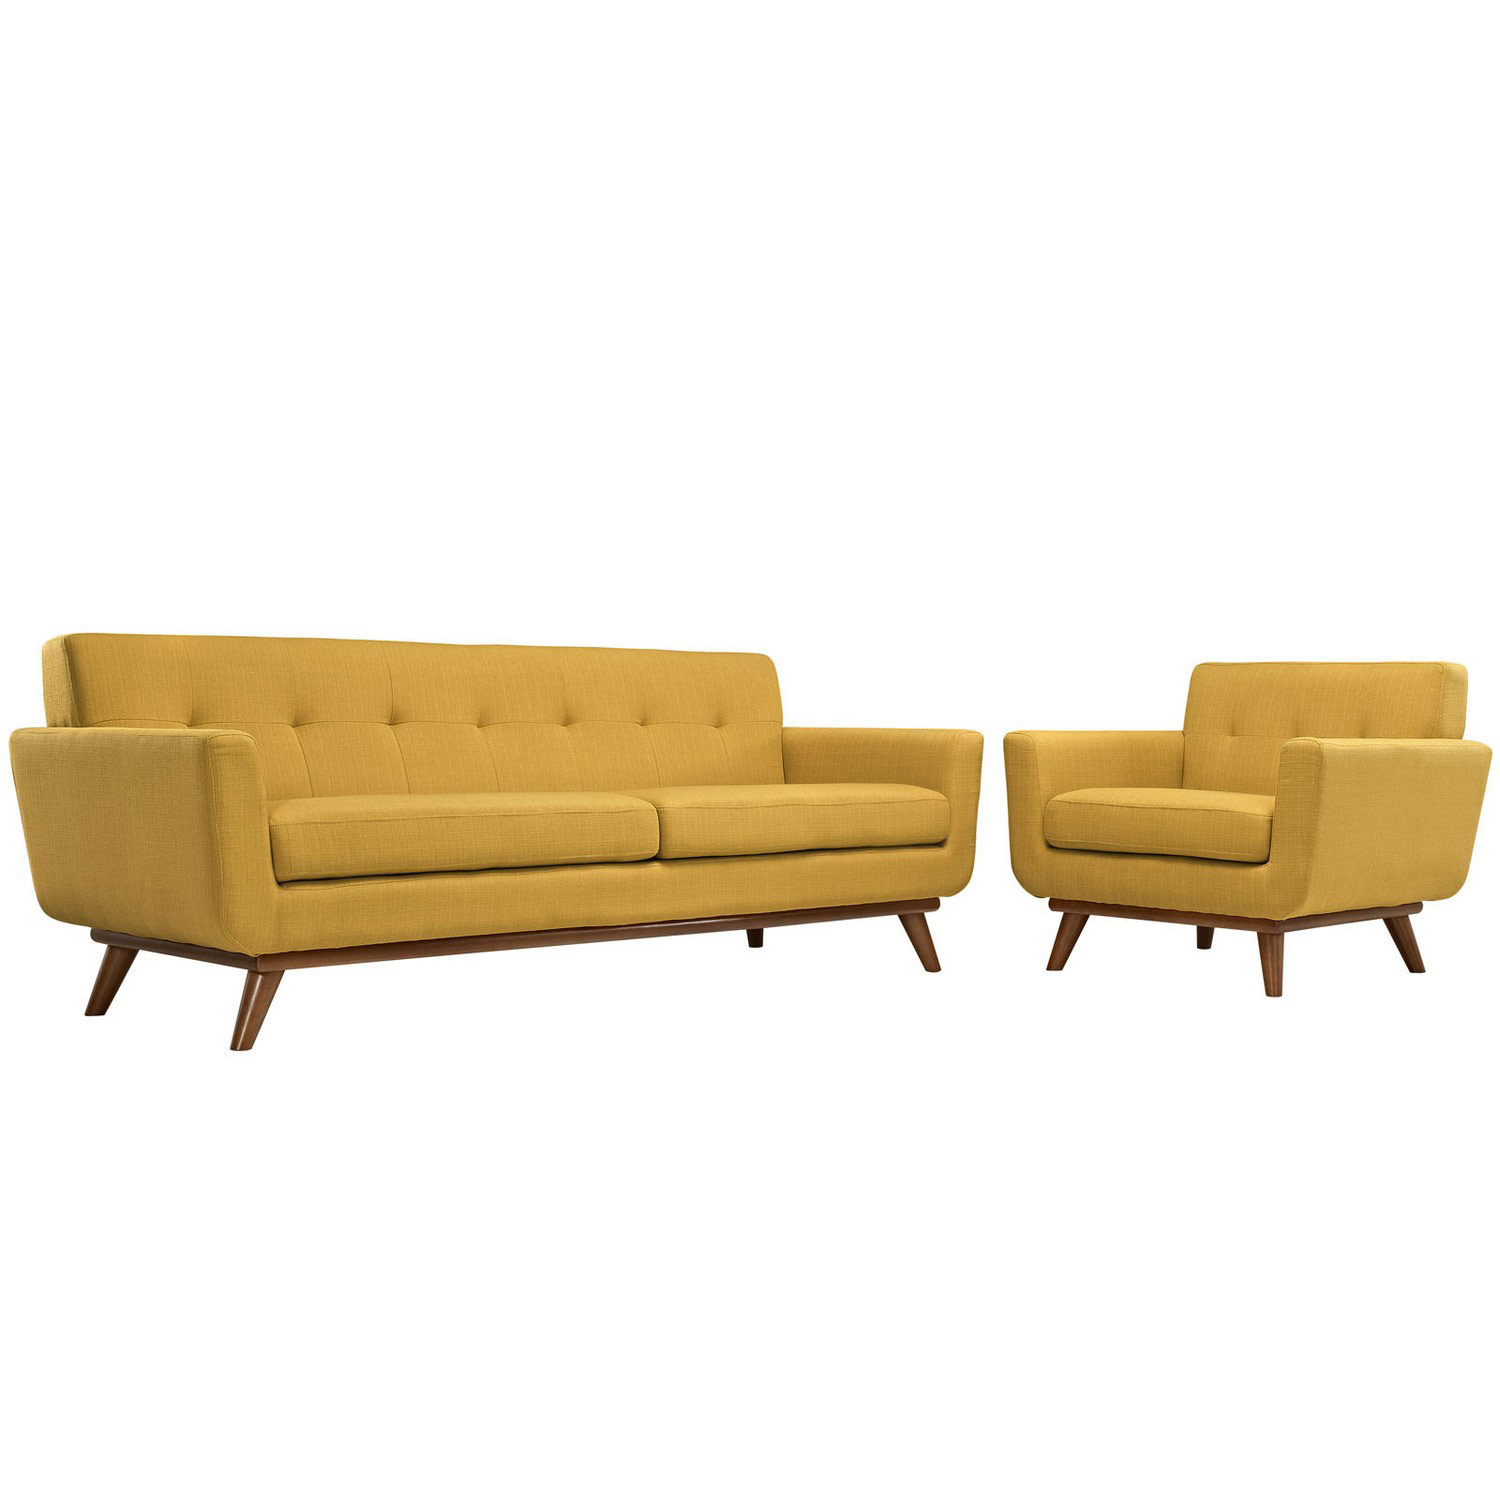 Modway Engage Armchair and Sofa Set of 2 - Citrus